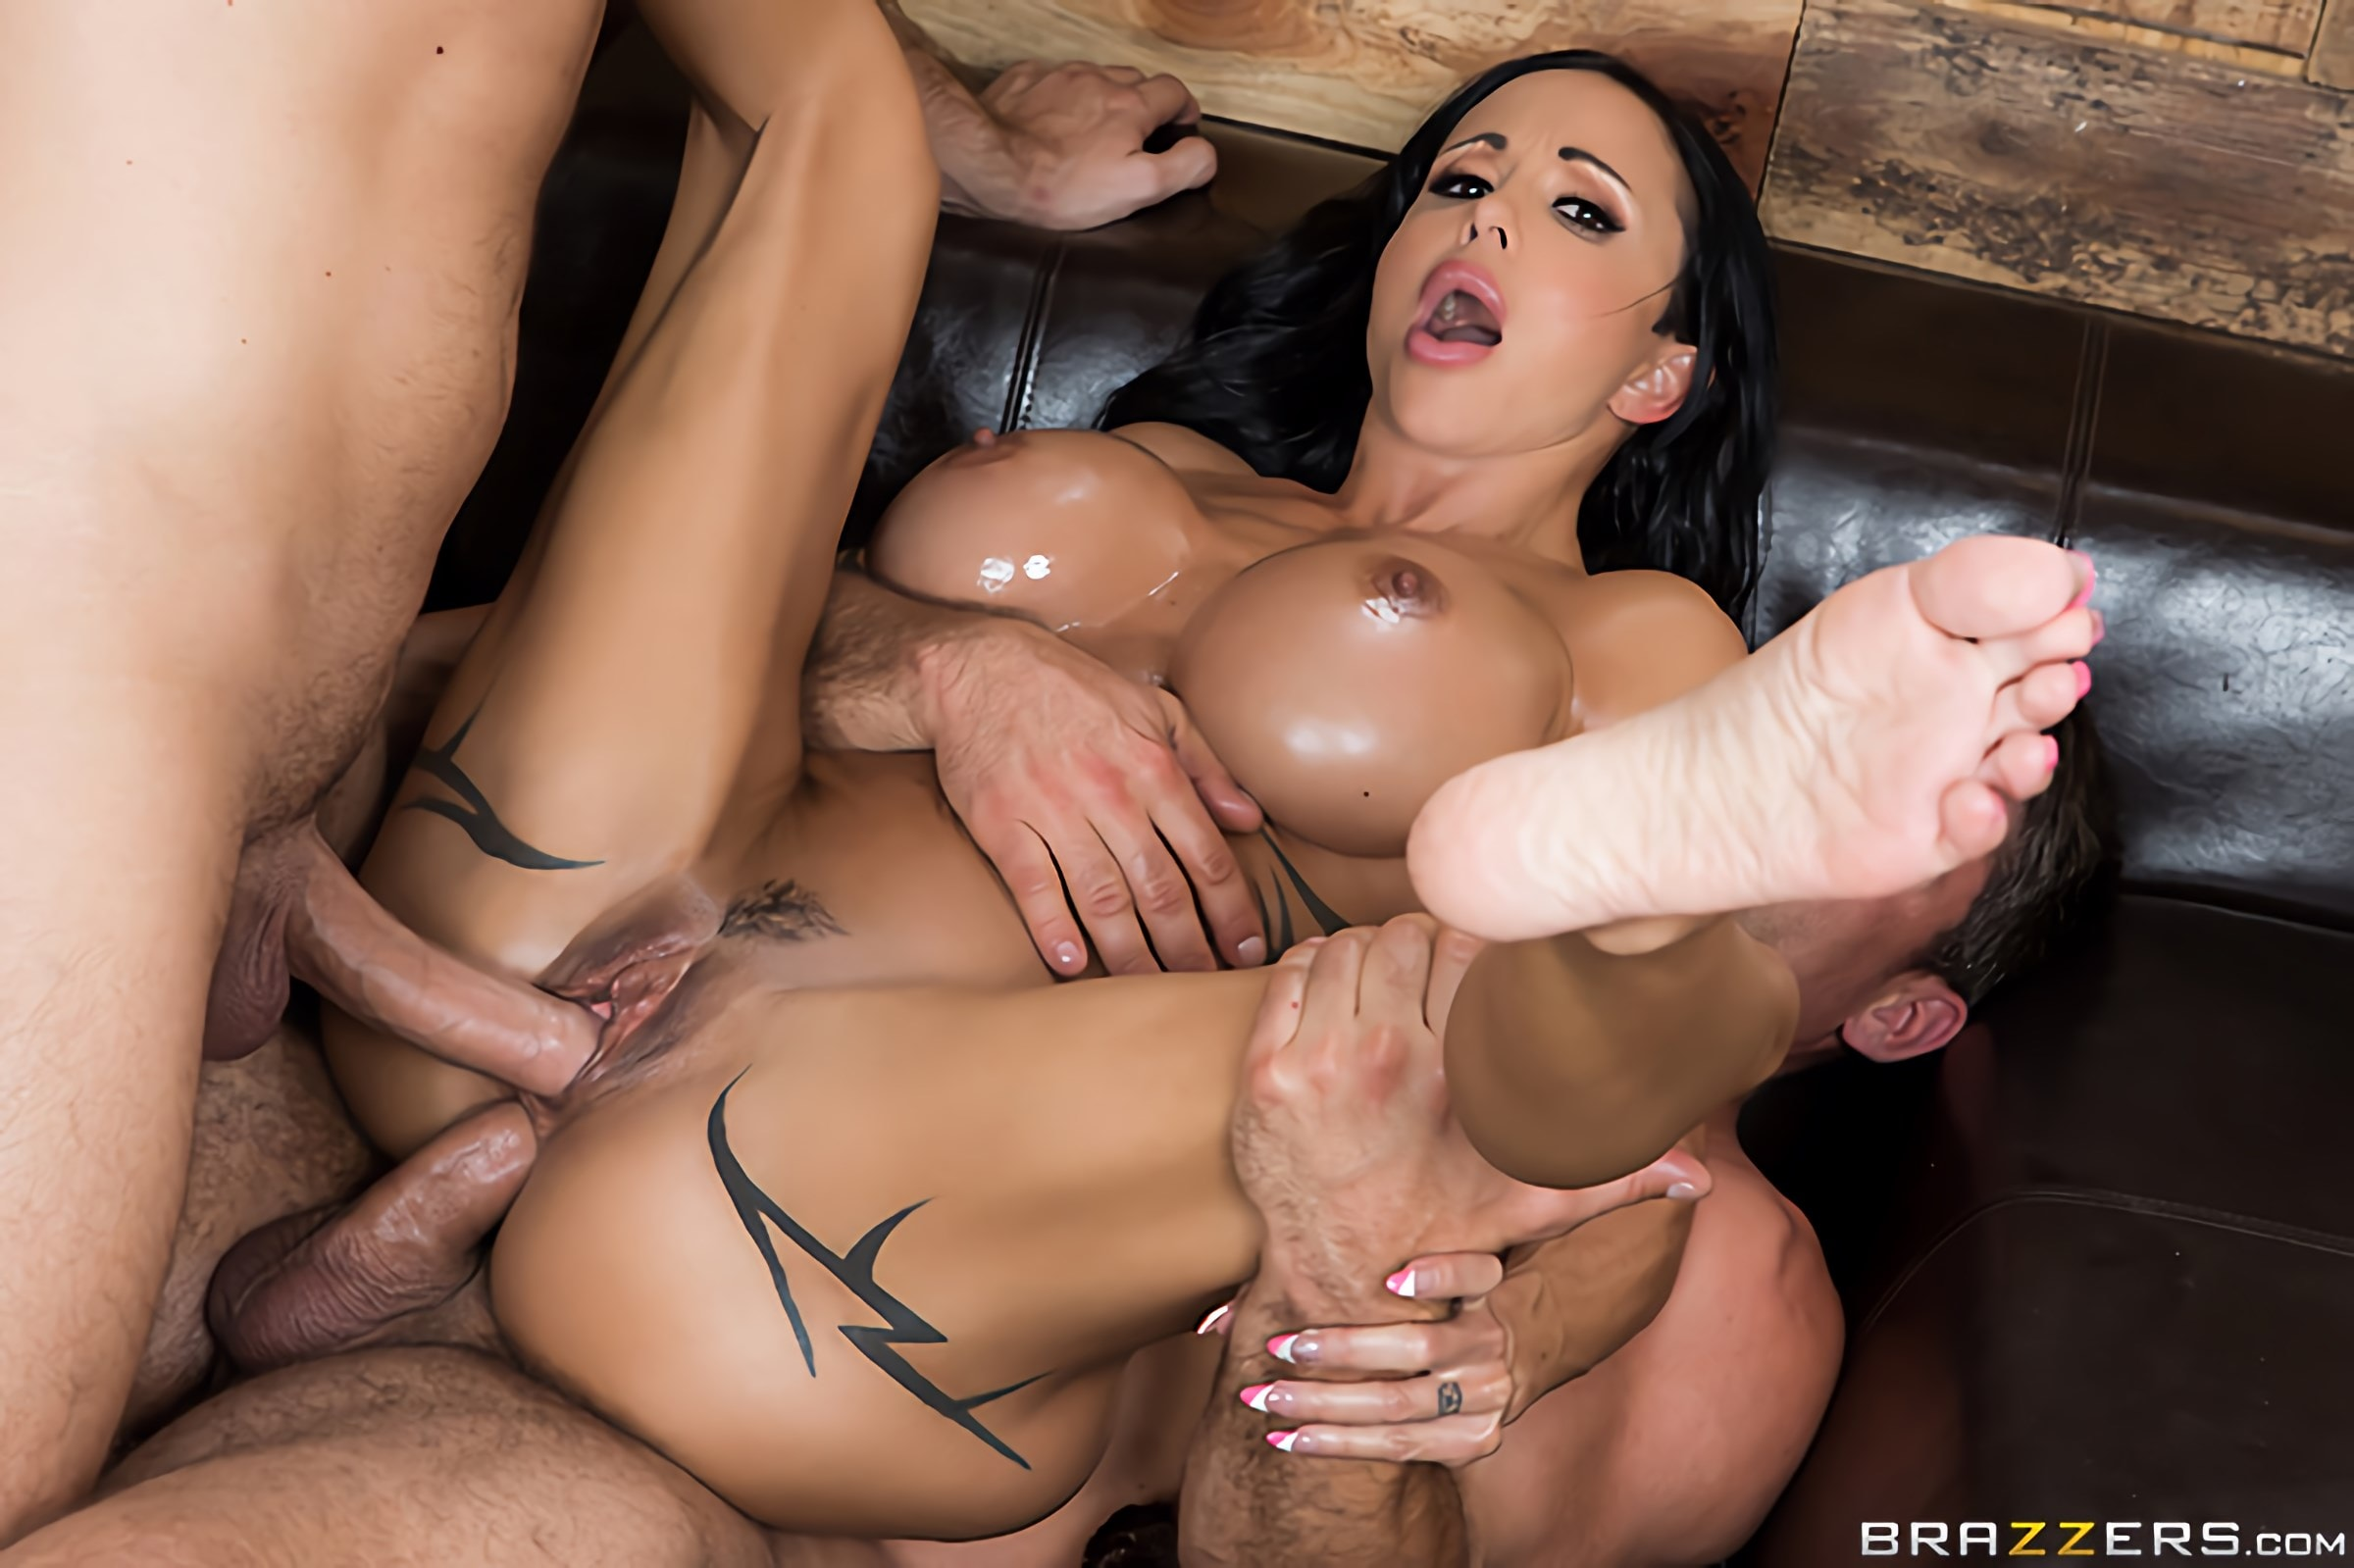 Brazzers 'My Two Fuck Boys' starring Jewels Jade (Photo 4)